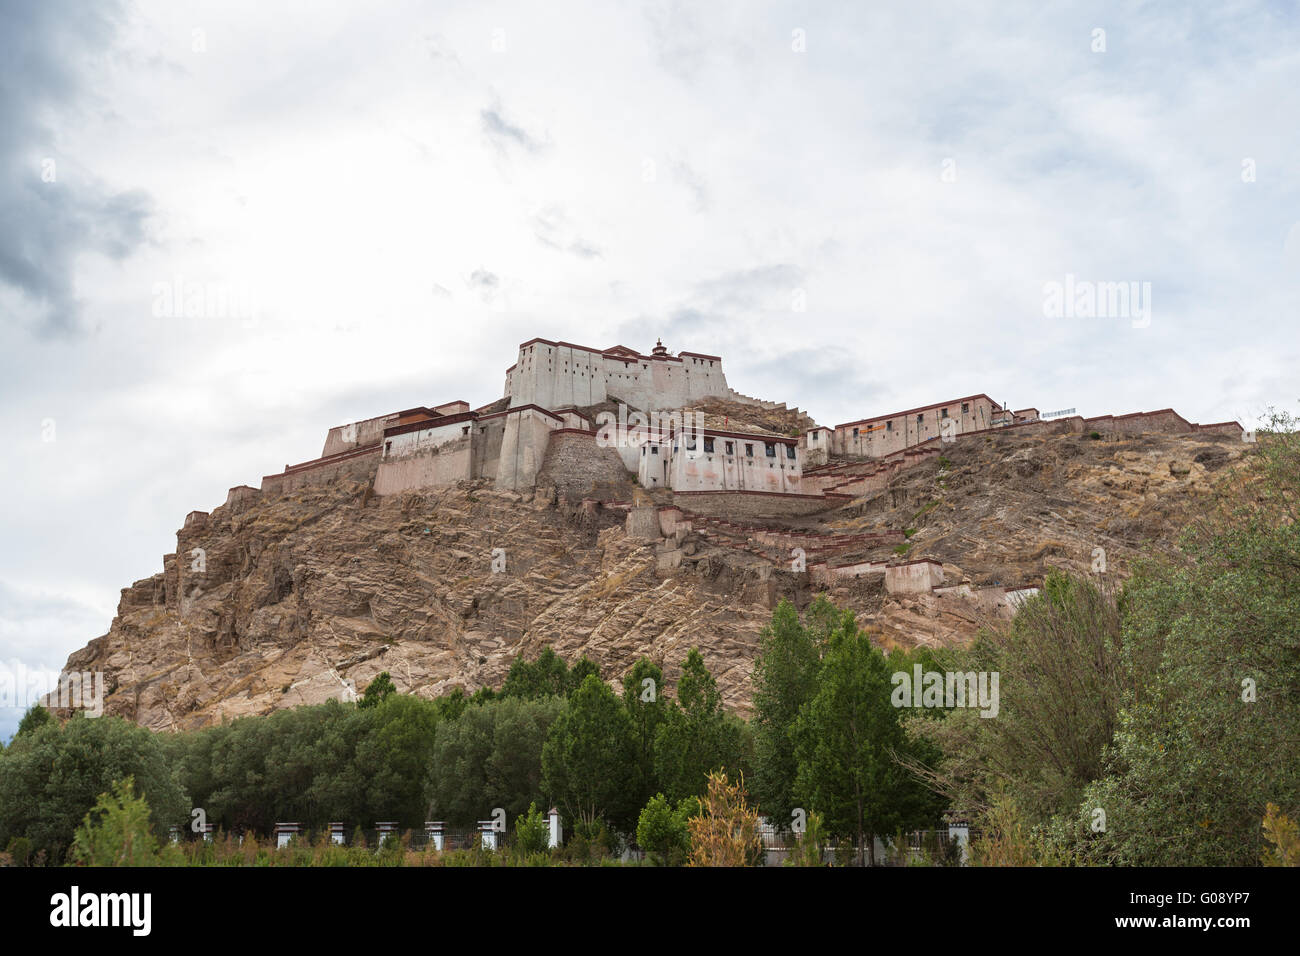 View of the famous fort in Gyantse, Tibet, China - Stock Image